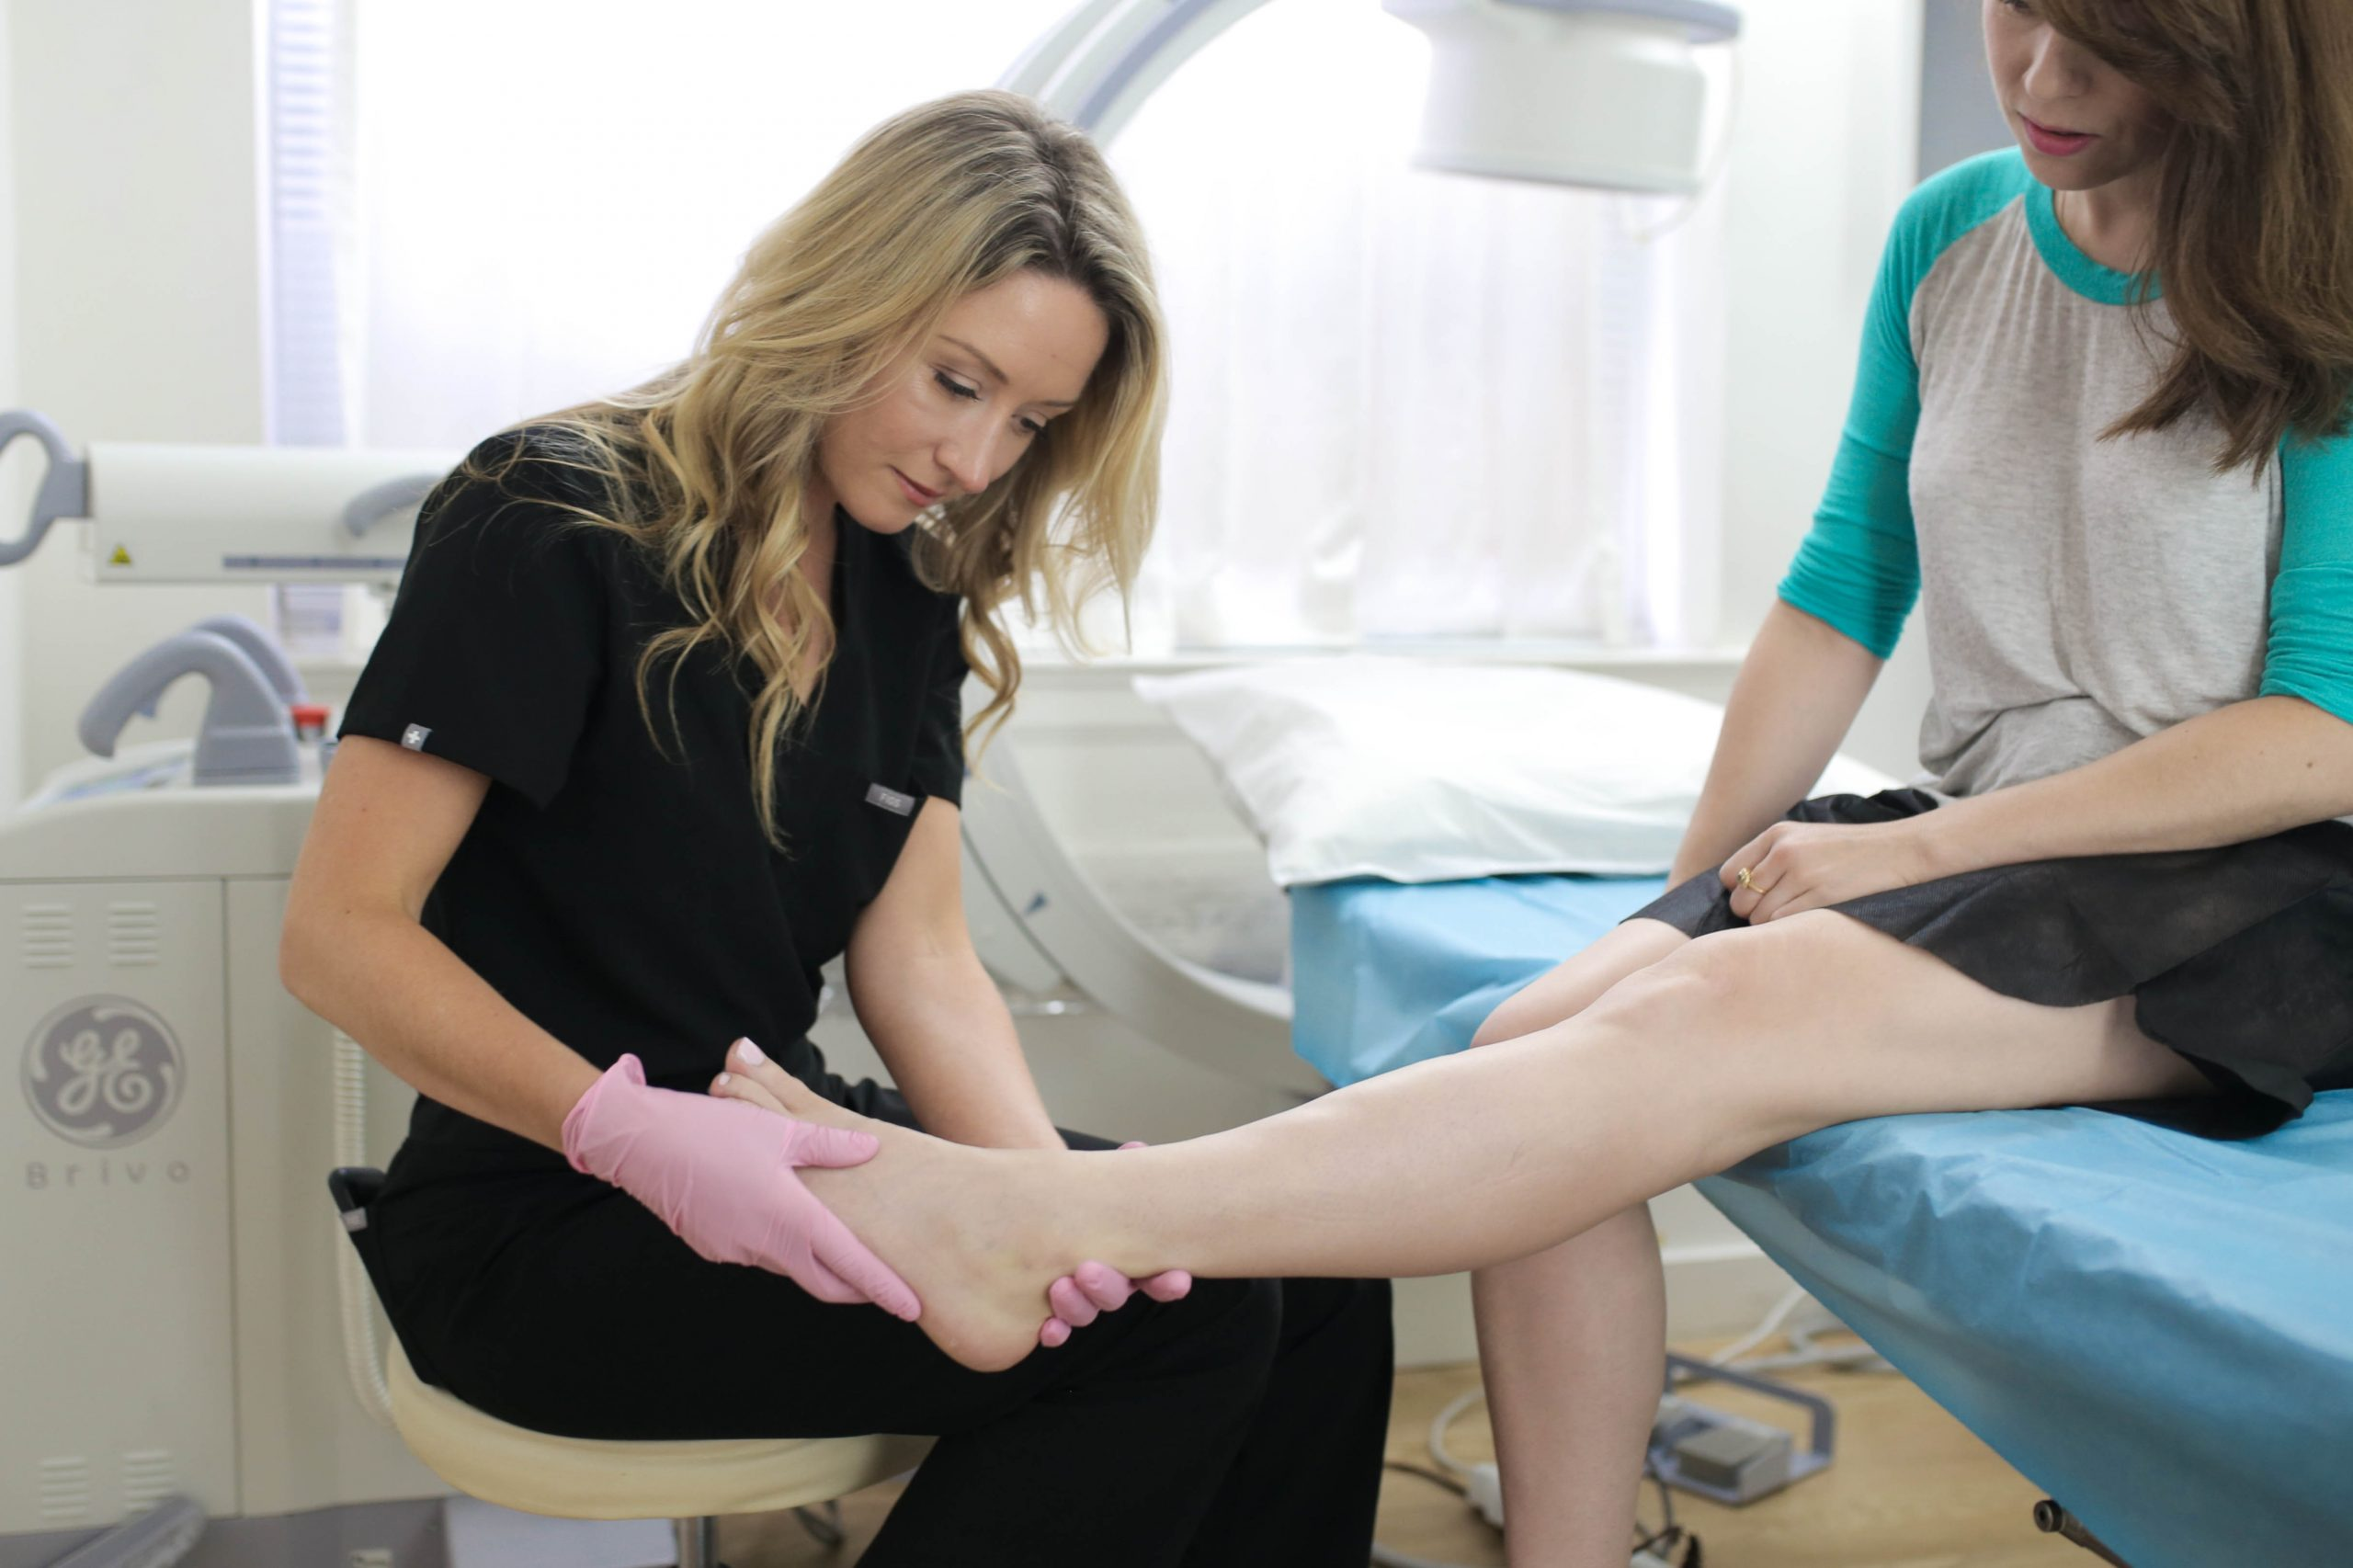 Are you wondering who's the best vein doctor in your area? This article introduces you to the best varicose vein doctor near Hackensack and answers questions about vein treatments.